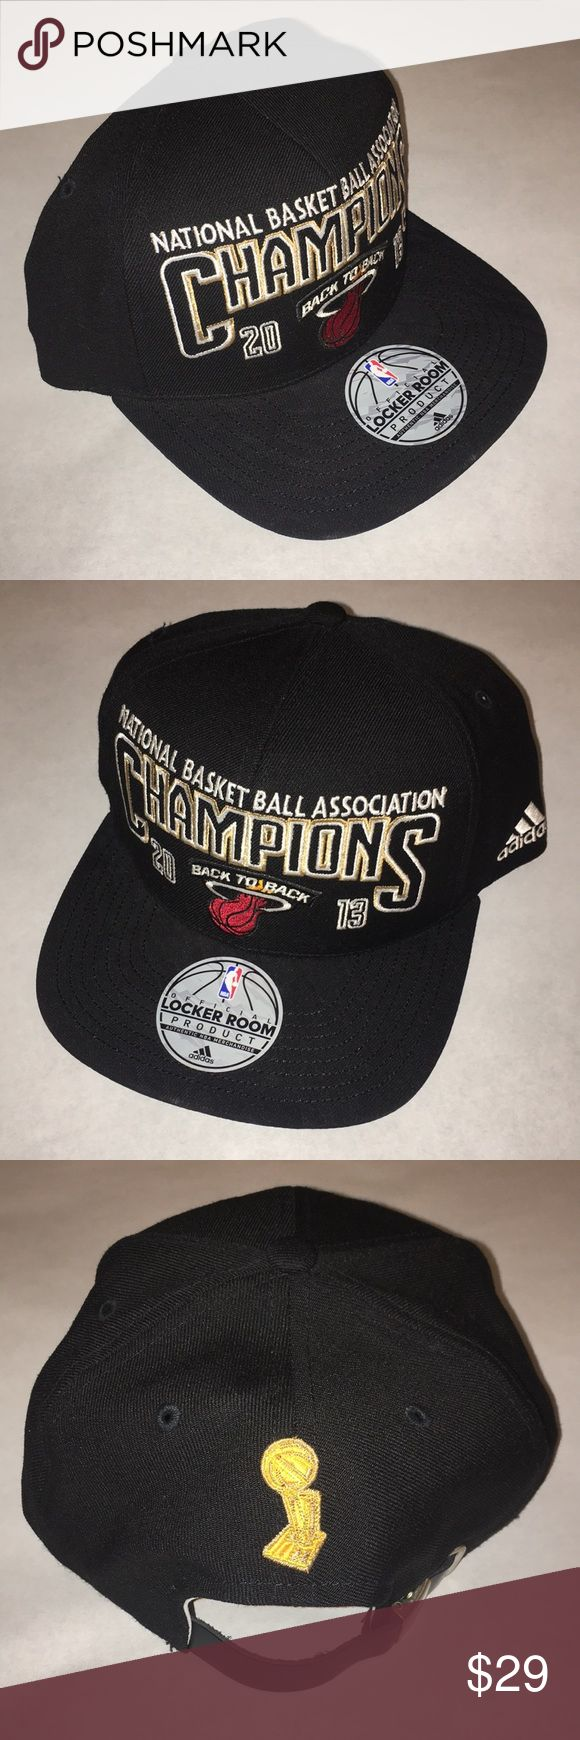 ADIDAS NBA Champions 2013 The Finals Back To Back Adjustable leather strap. adidas Accessories Hats